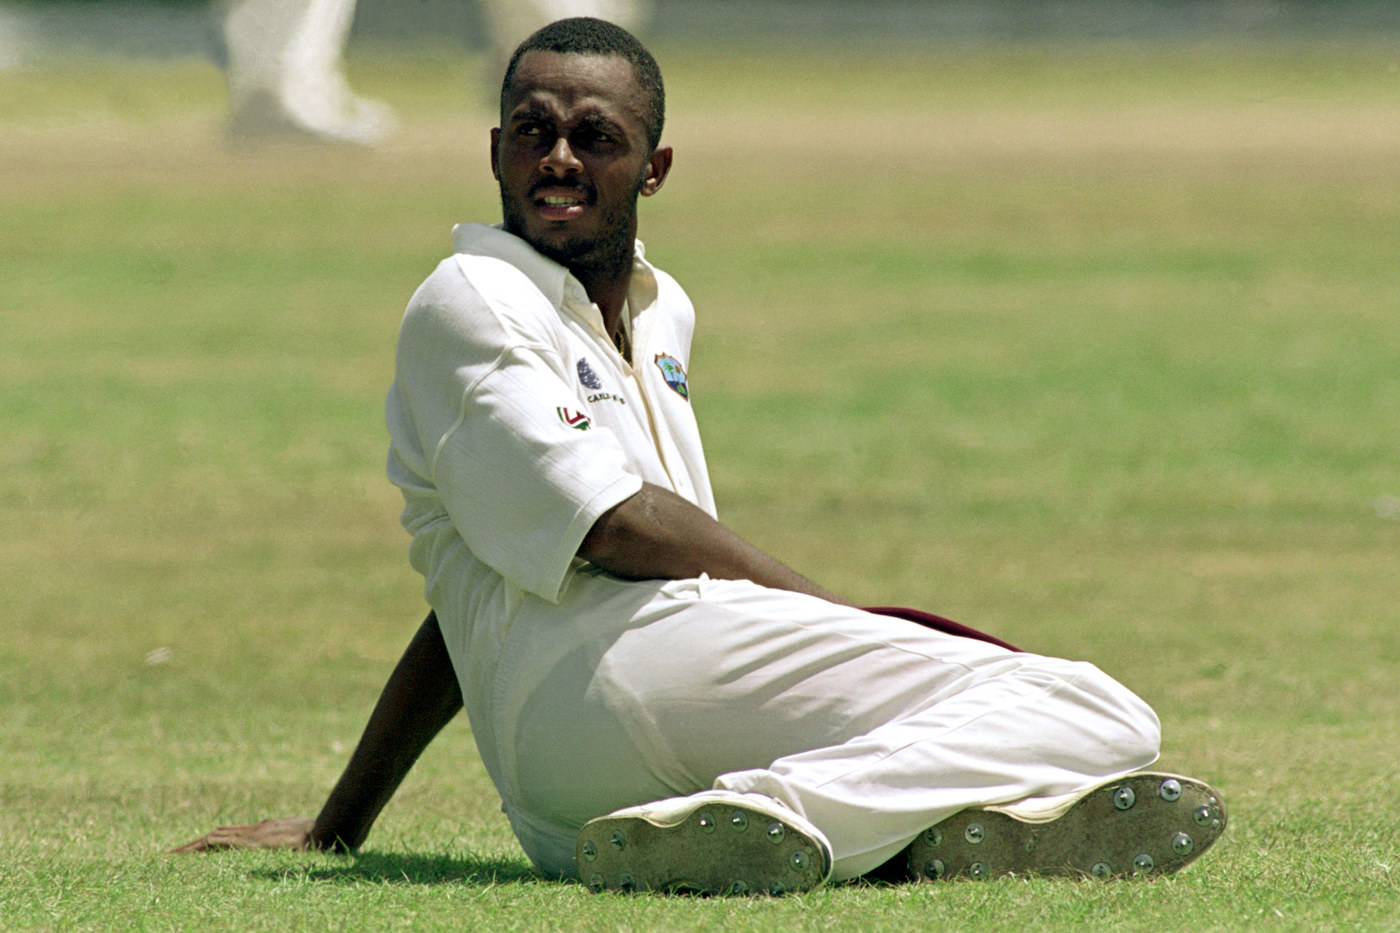 Courtney Walsh fields